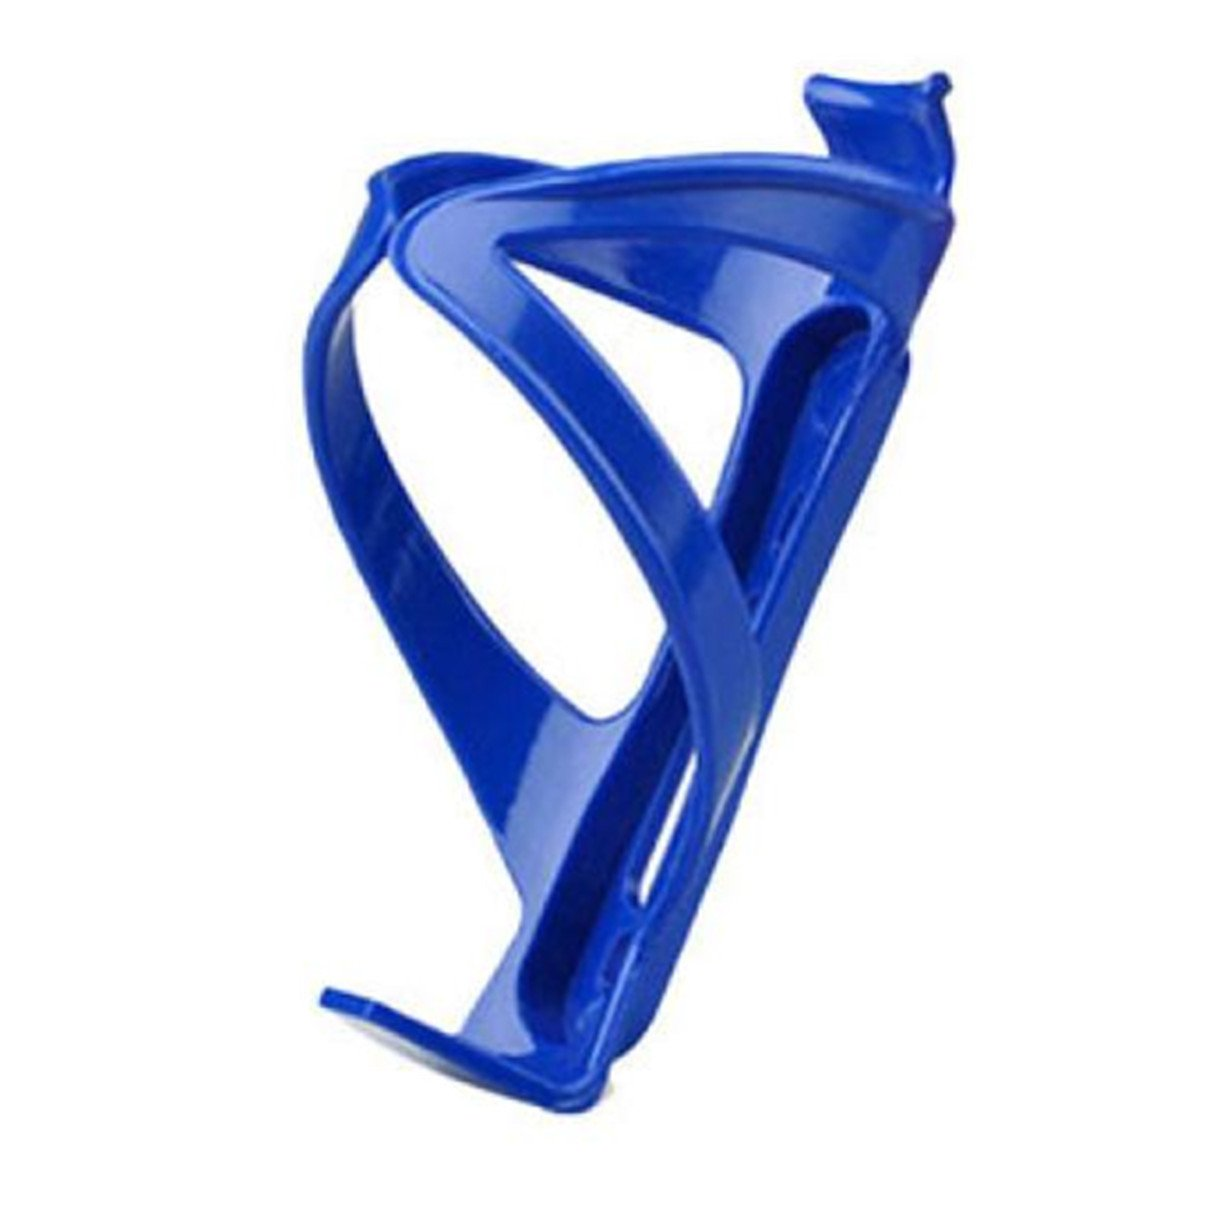 Witspace Bike Cycling Mountain Road Bicycle Water Bottle Holder Cages Rack Mount (Blue)